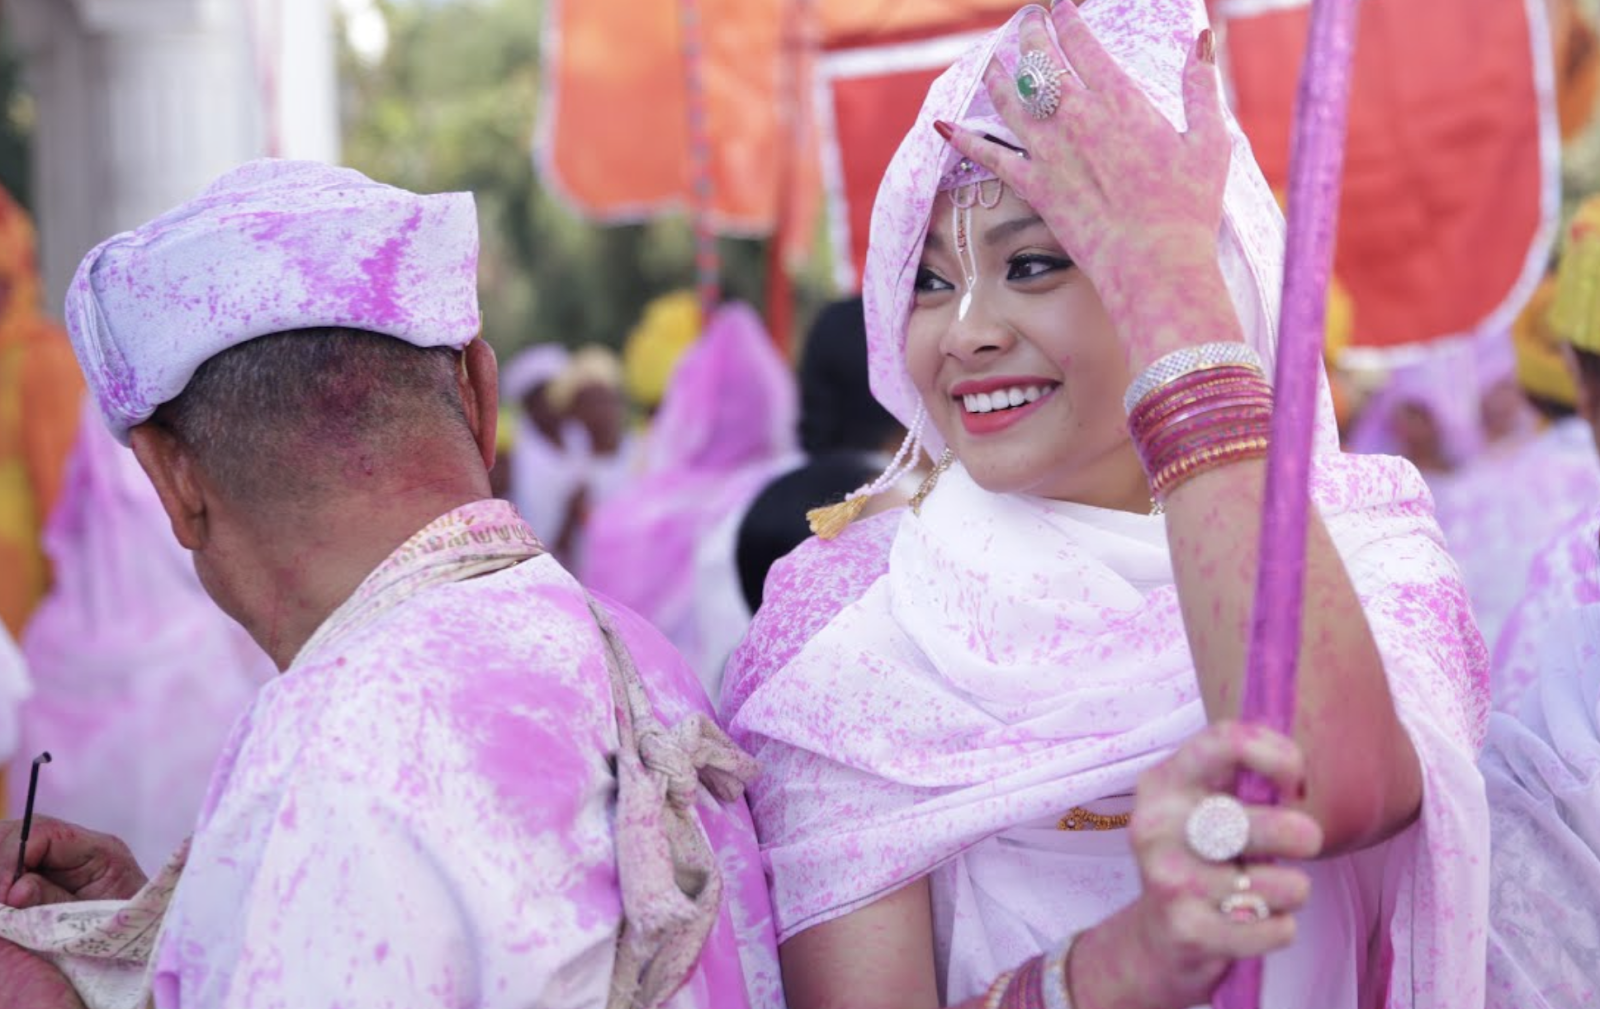 Celebrate Holi virtually with stories from across India